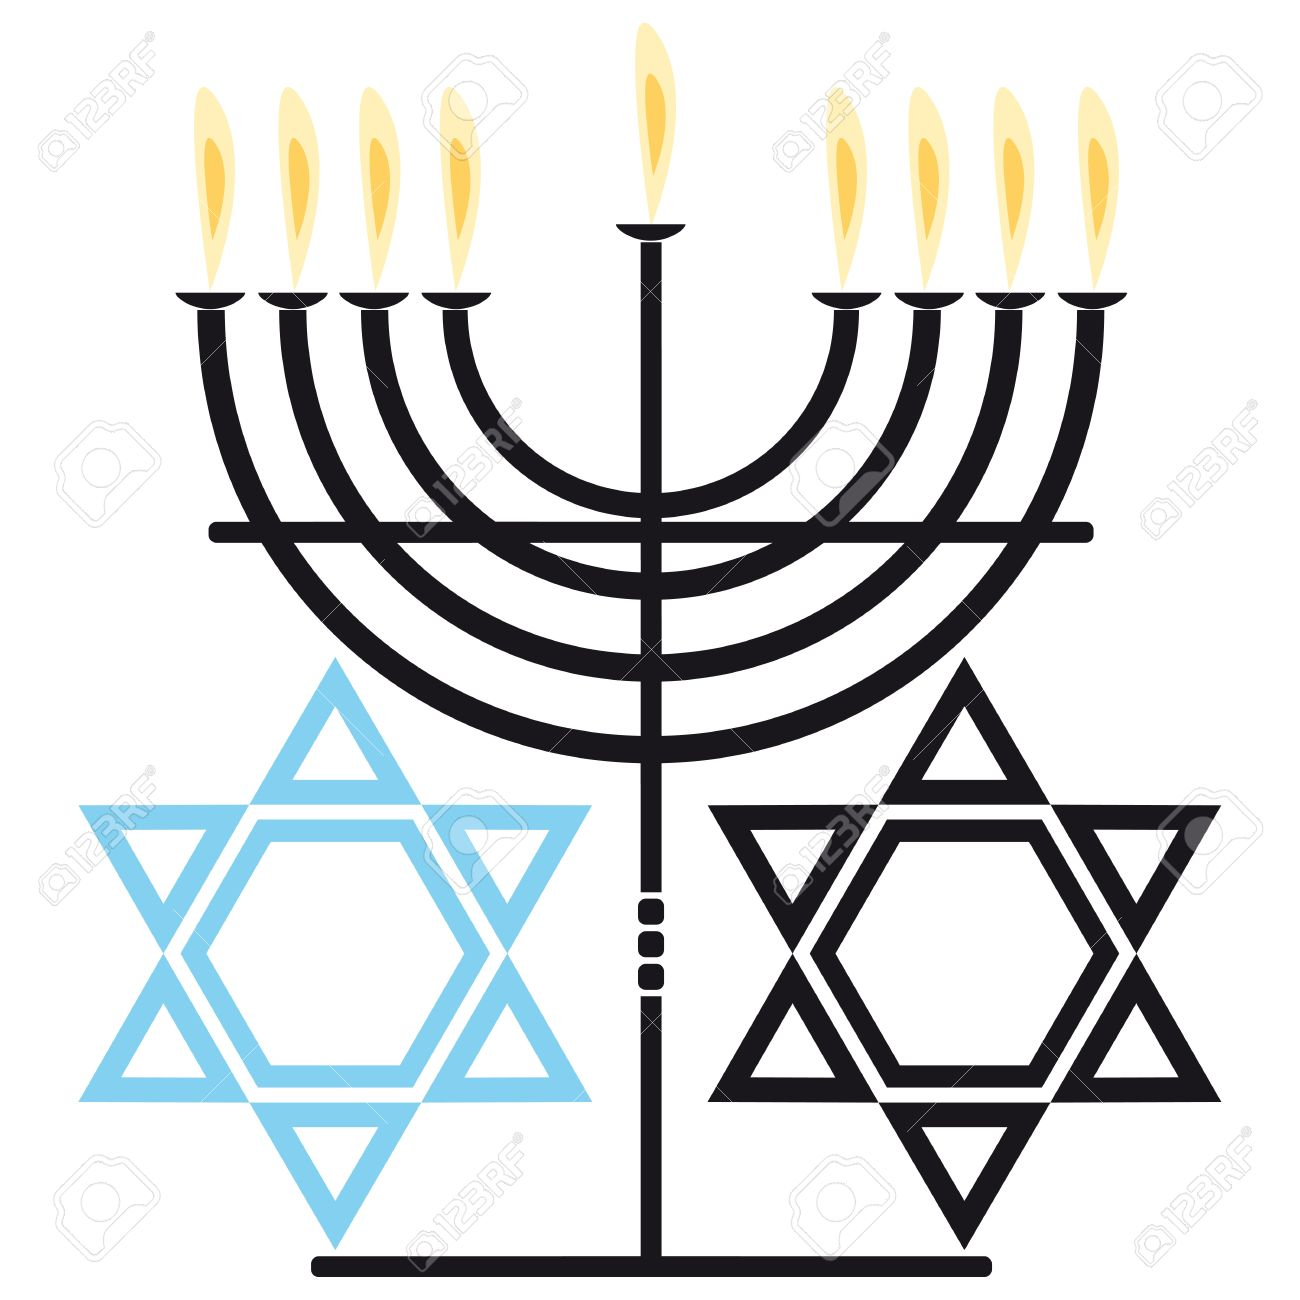 Two Symbols Of The Jewish Religion Nine Flame Candelabra And